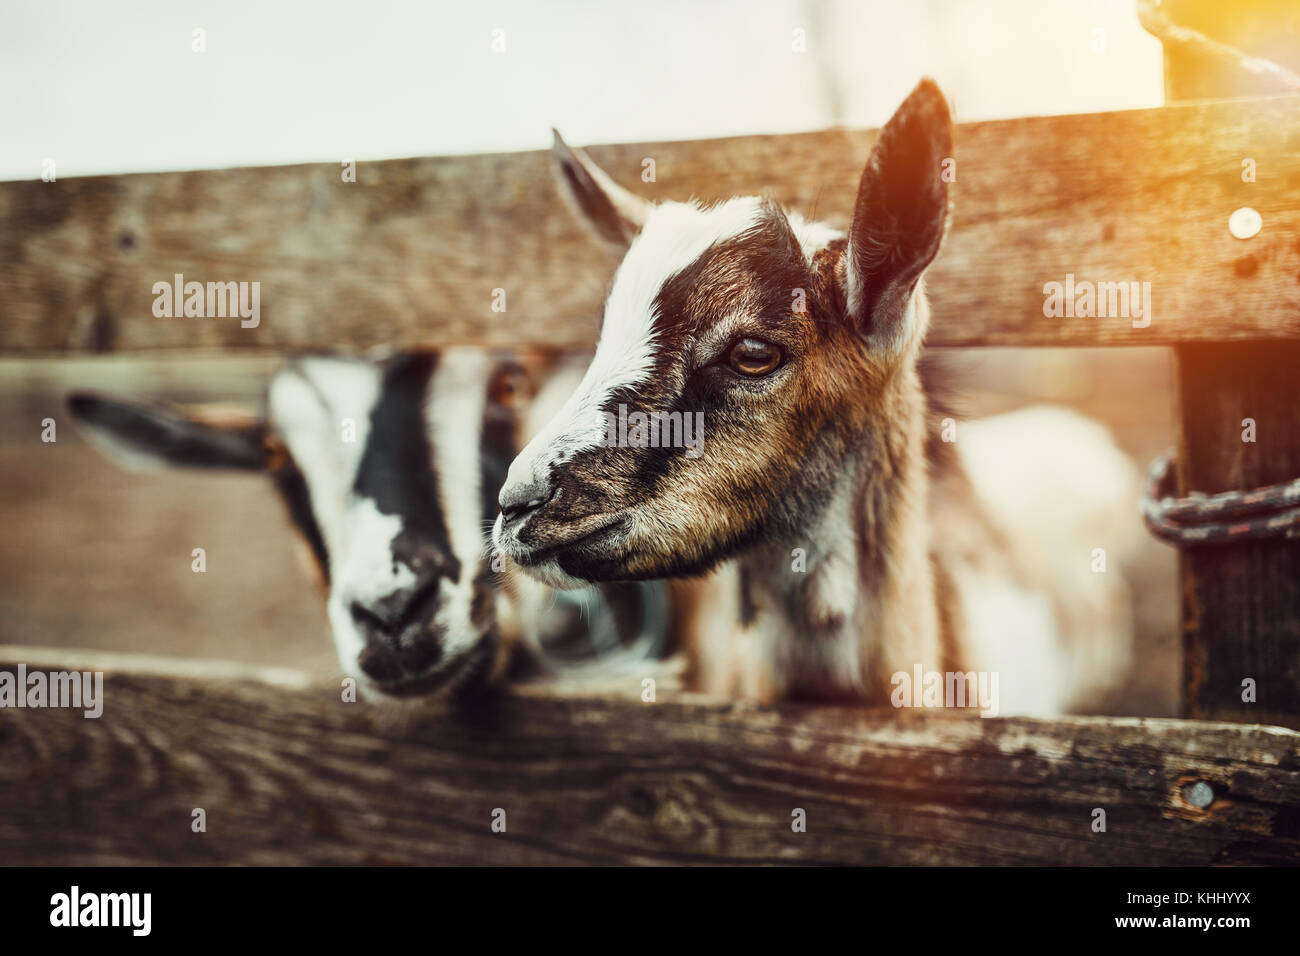 Cute Baby Goats - Stock Image